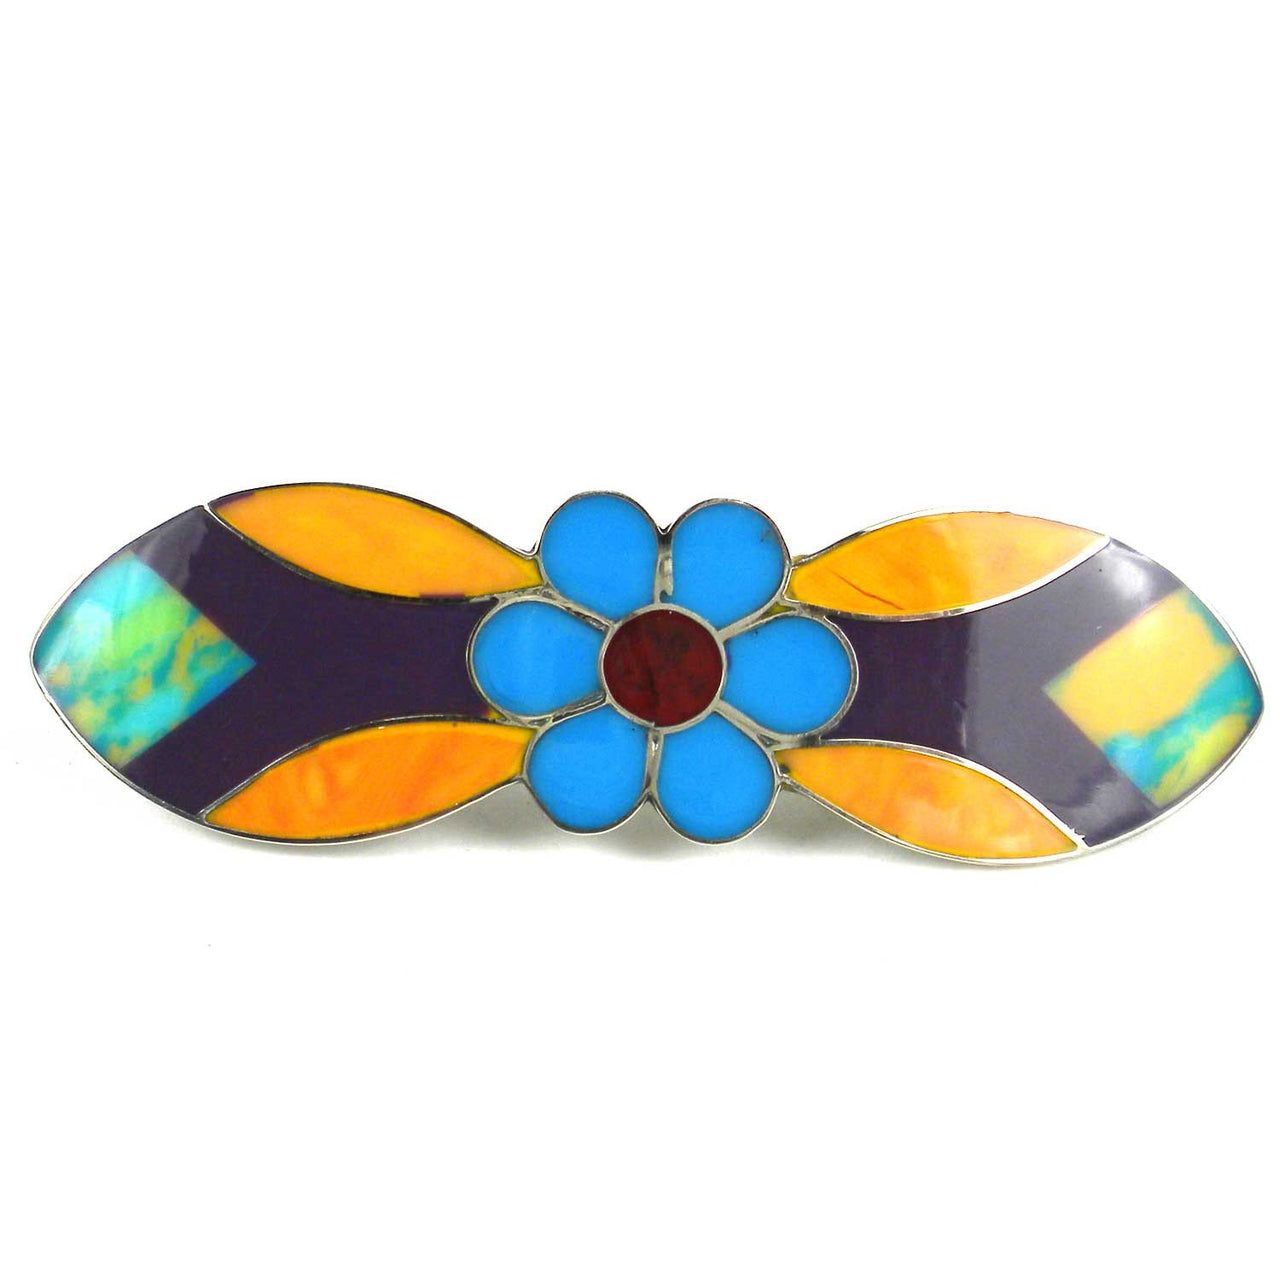 Alpaca Silver and Resin Flower Barrette - Artisana - Handmade - KA Designs Online